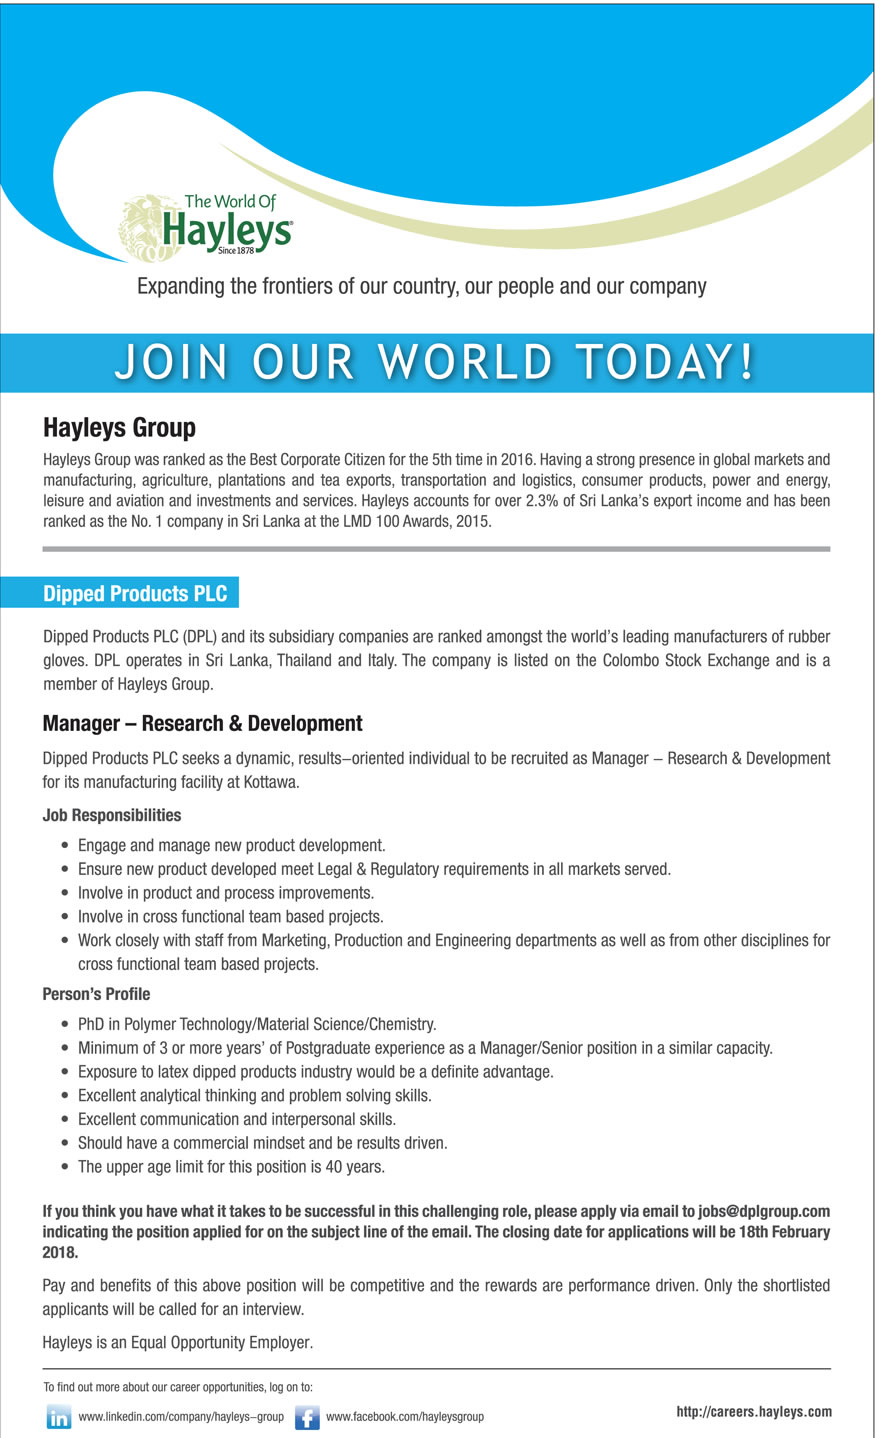 Manager Heyleys Company - Research & Development